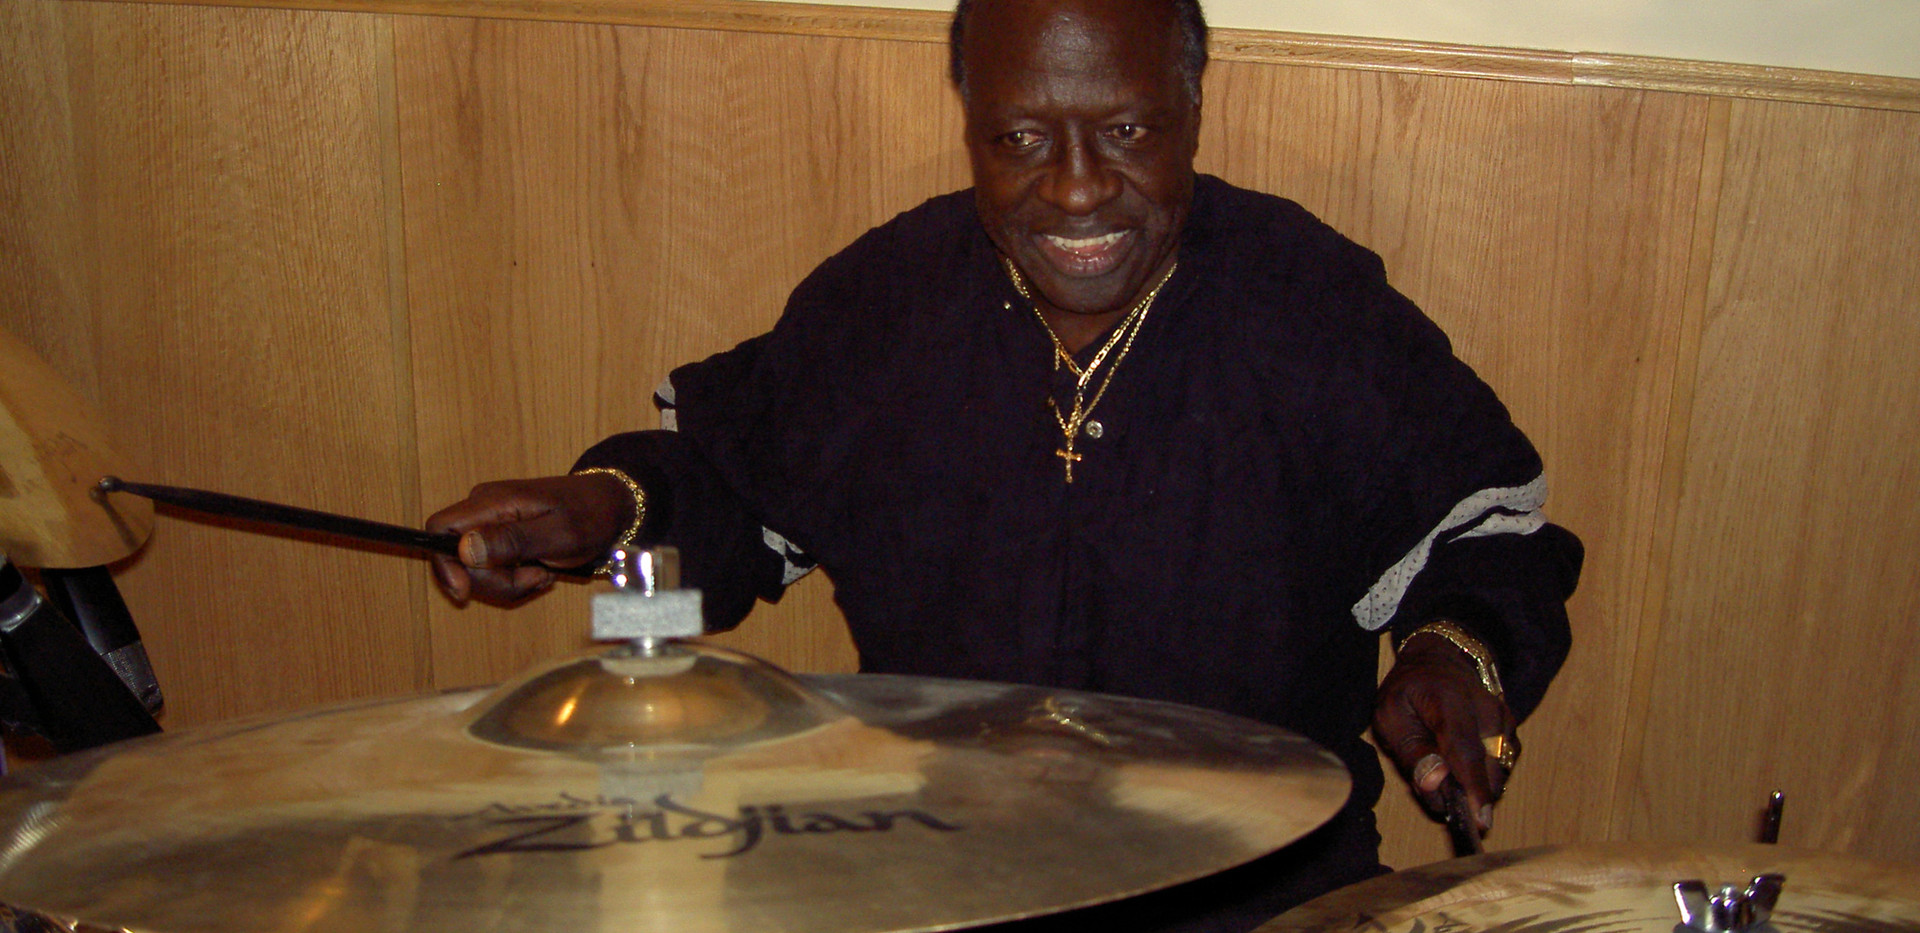 the GREAT Alvin Sykes